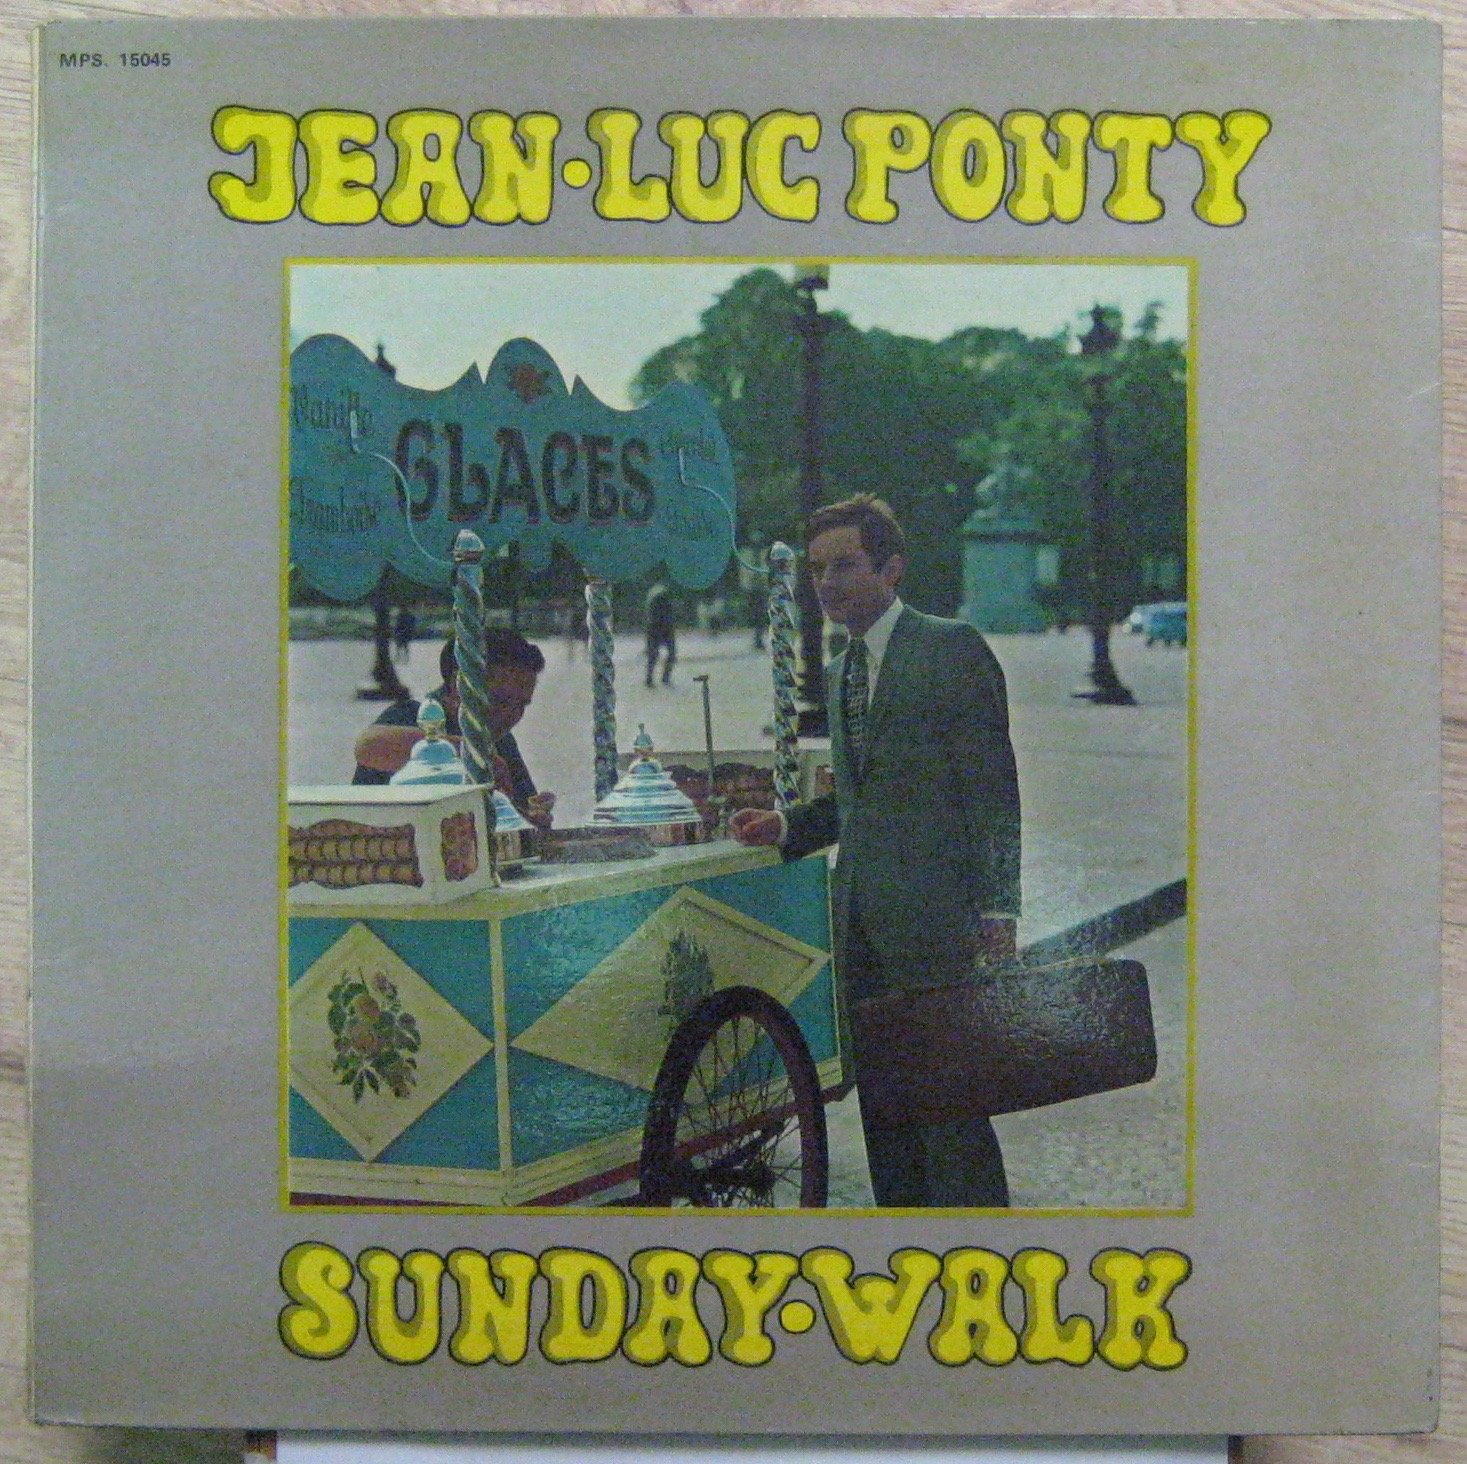 PONTY JEAN-LUC - Sunday Walk - LP